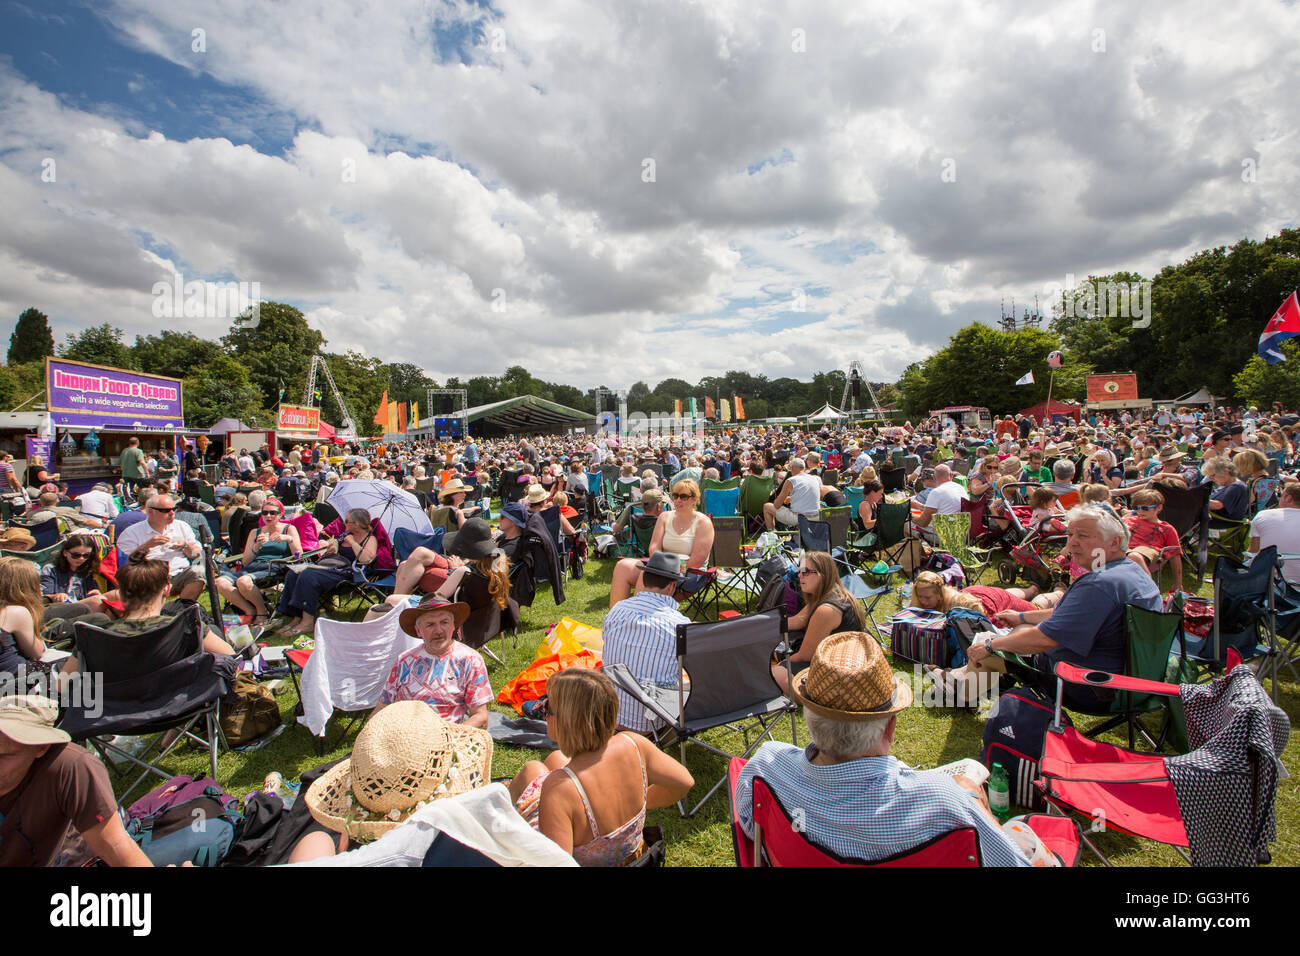 The crowd at Cambridge Folk Festival  2016 - Stock Image